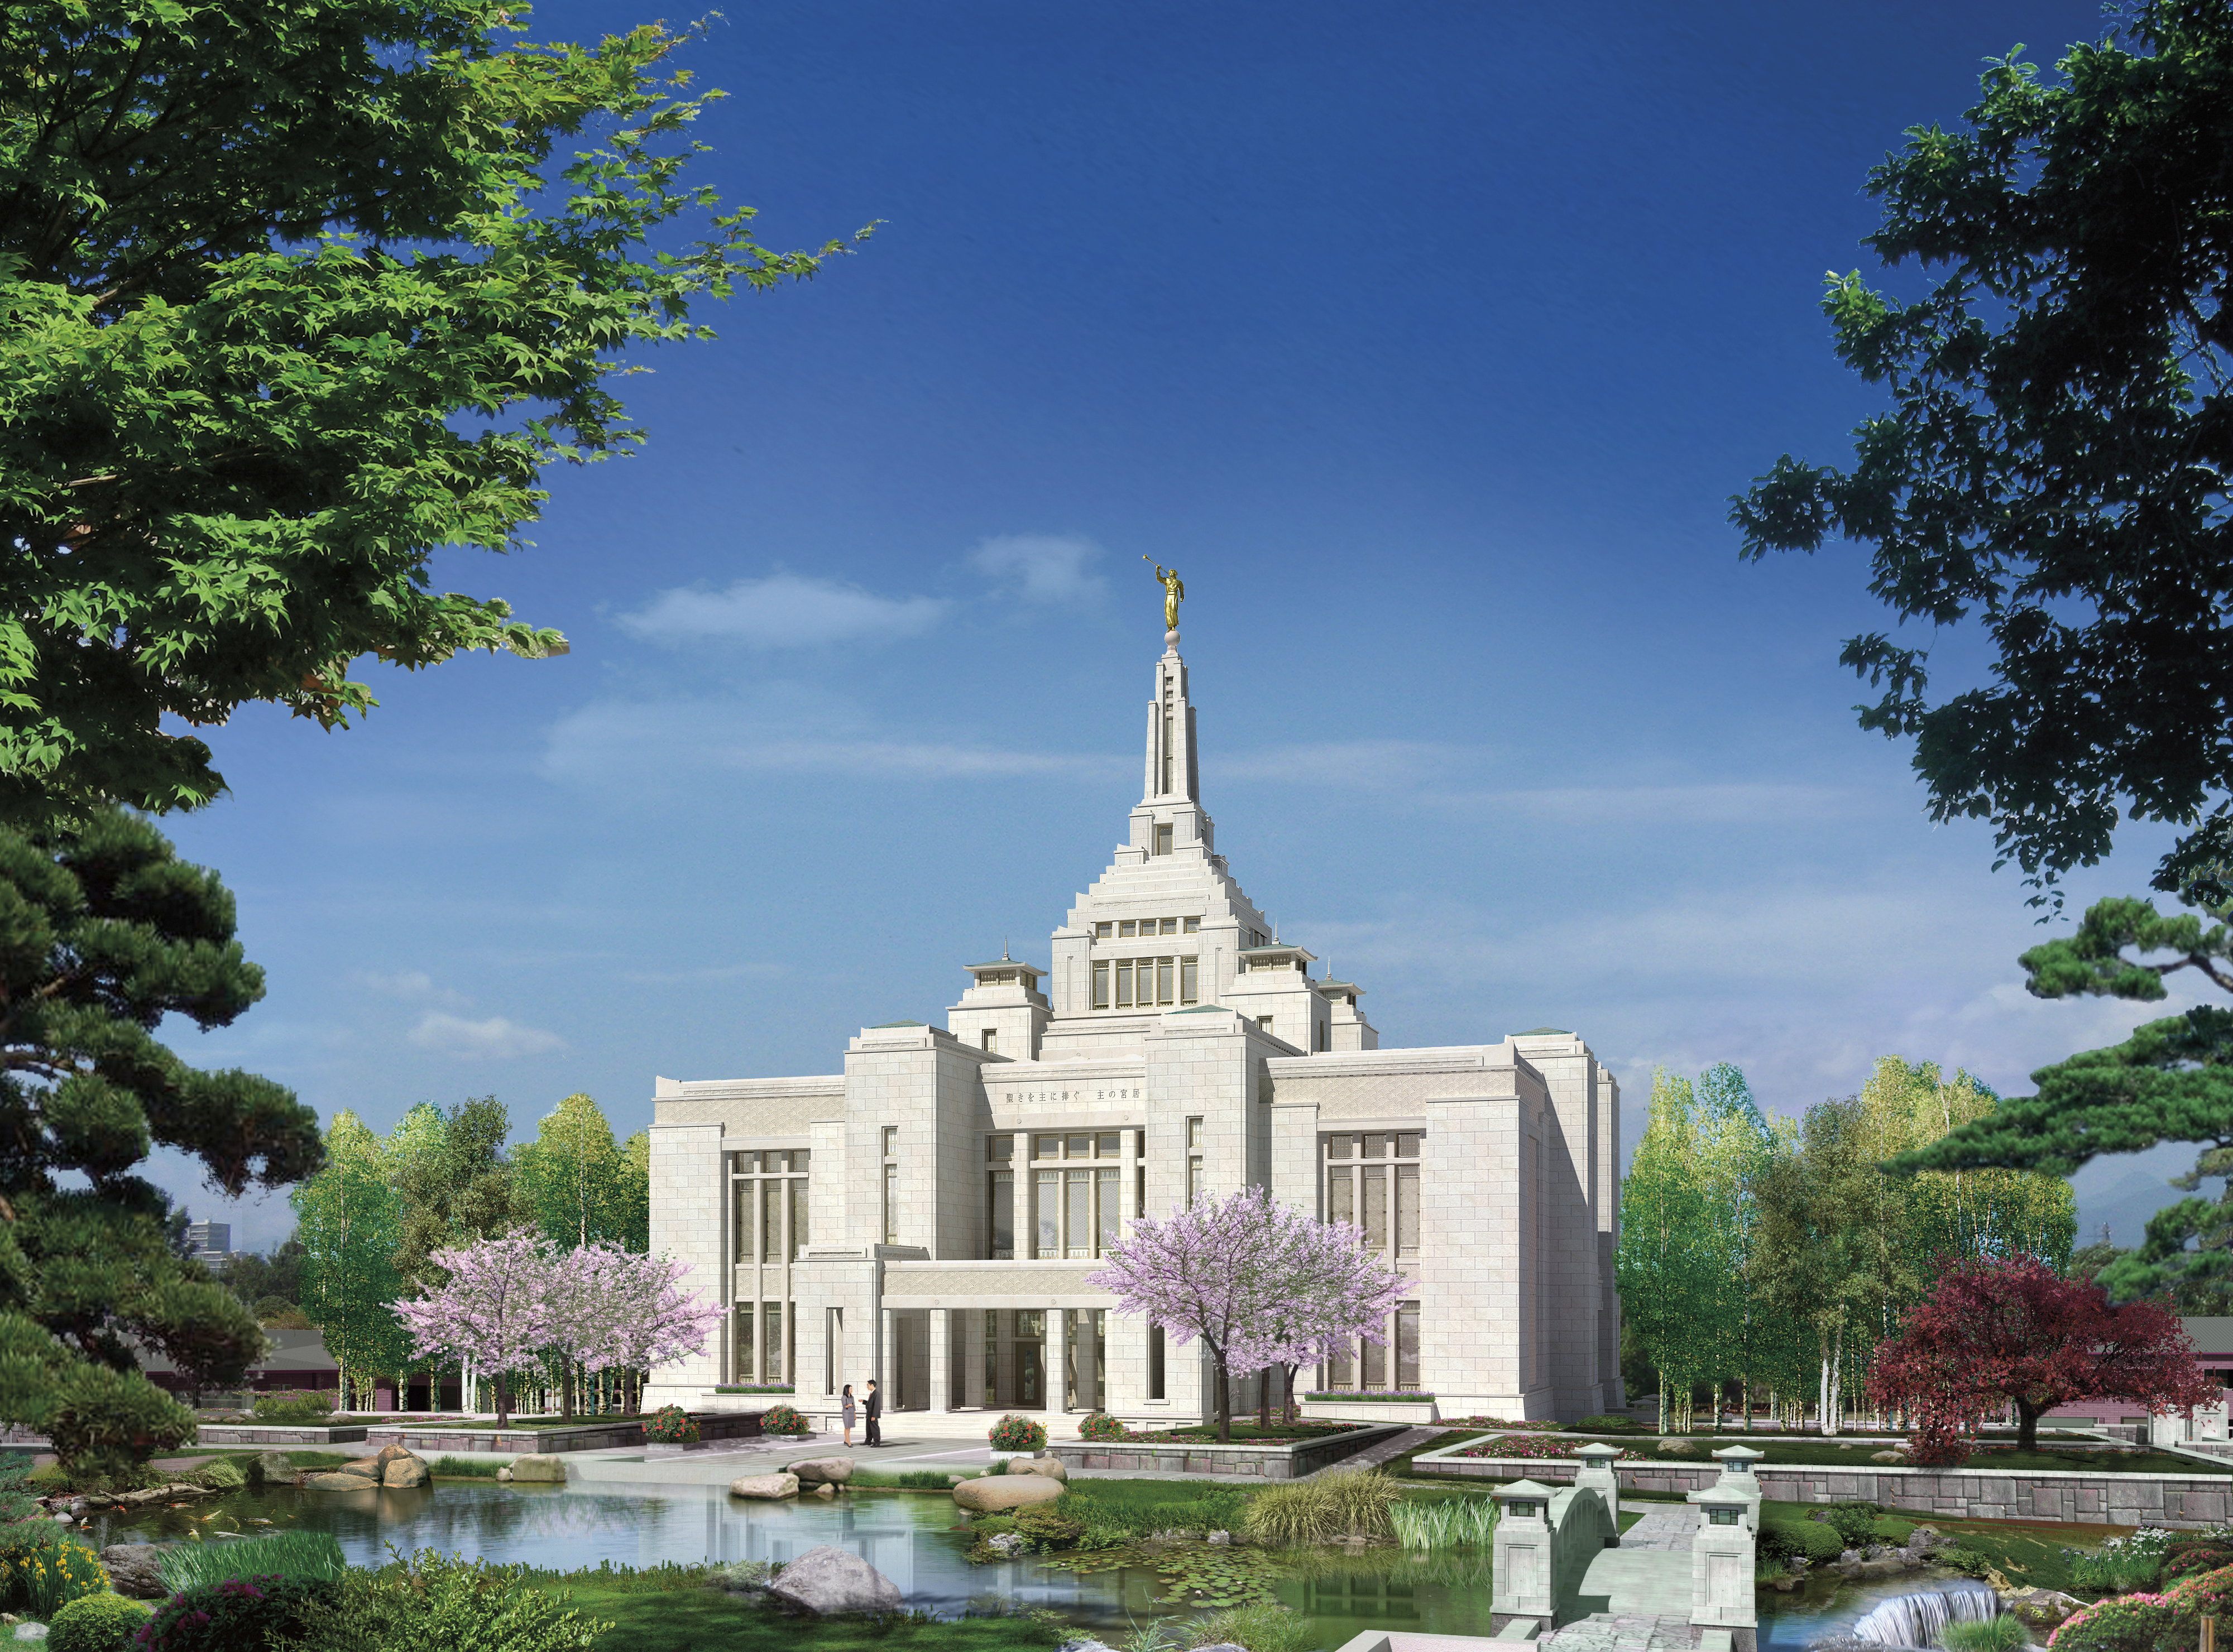 A colorful artistic rendering of the Sapporo Japan Temple.